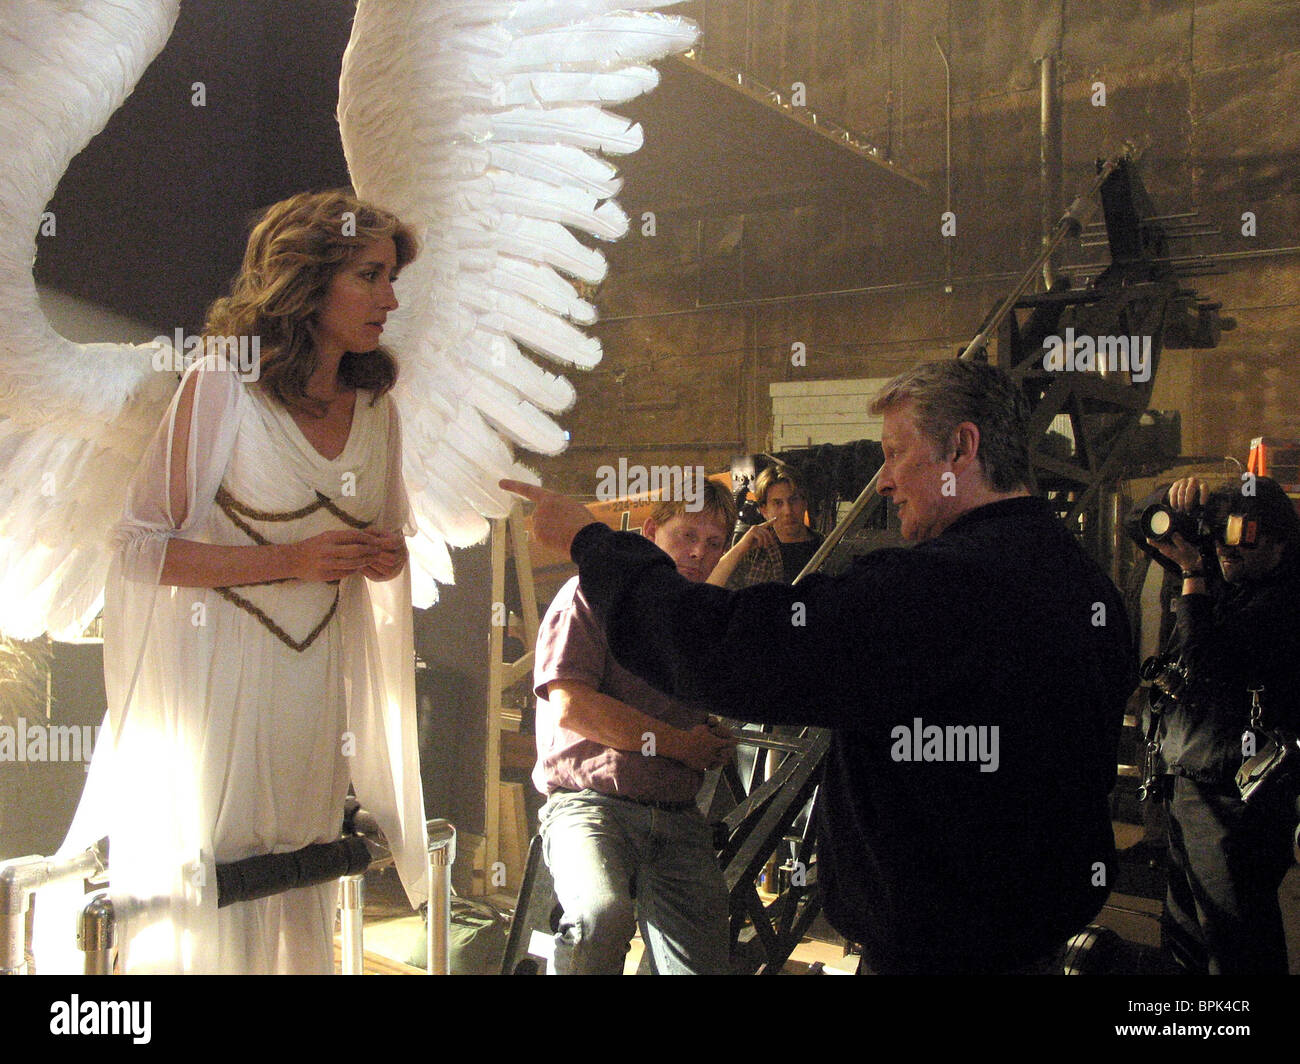 EMMA Thompson & Mike Nichols Angels in America (2003) Imagen De Stock